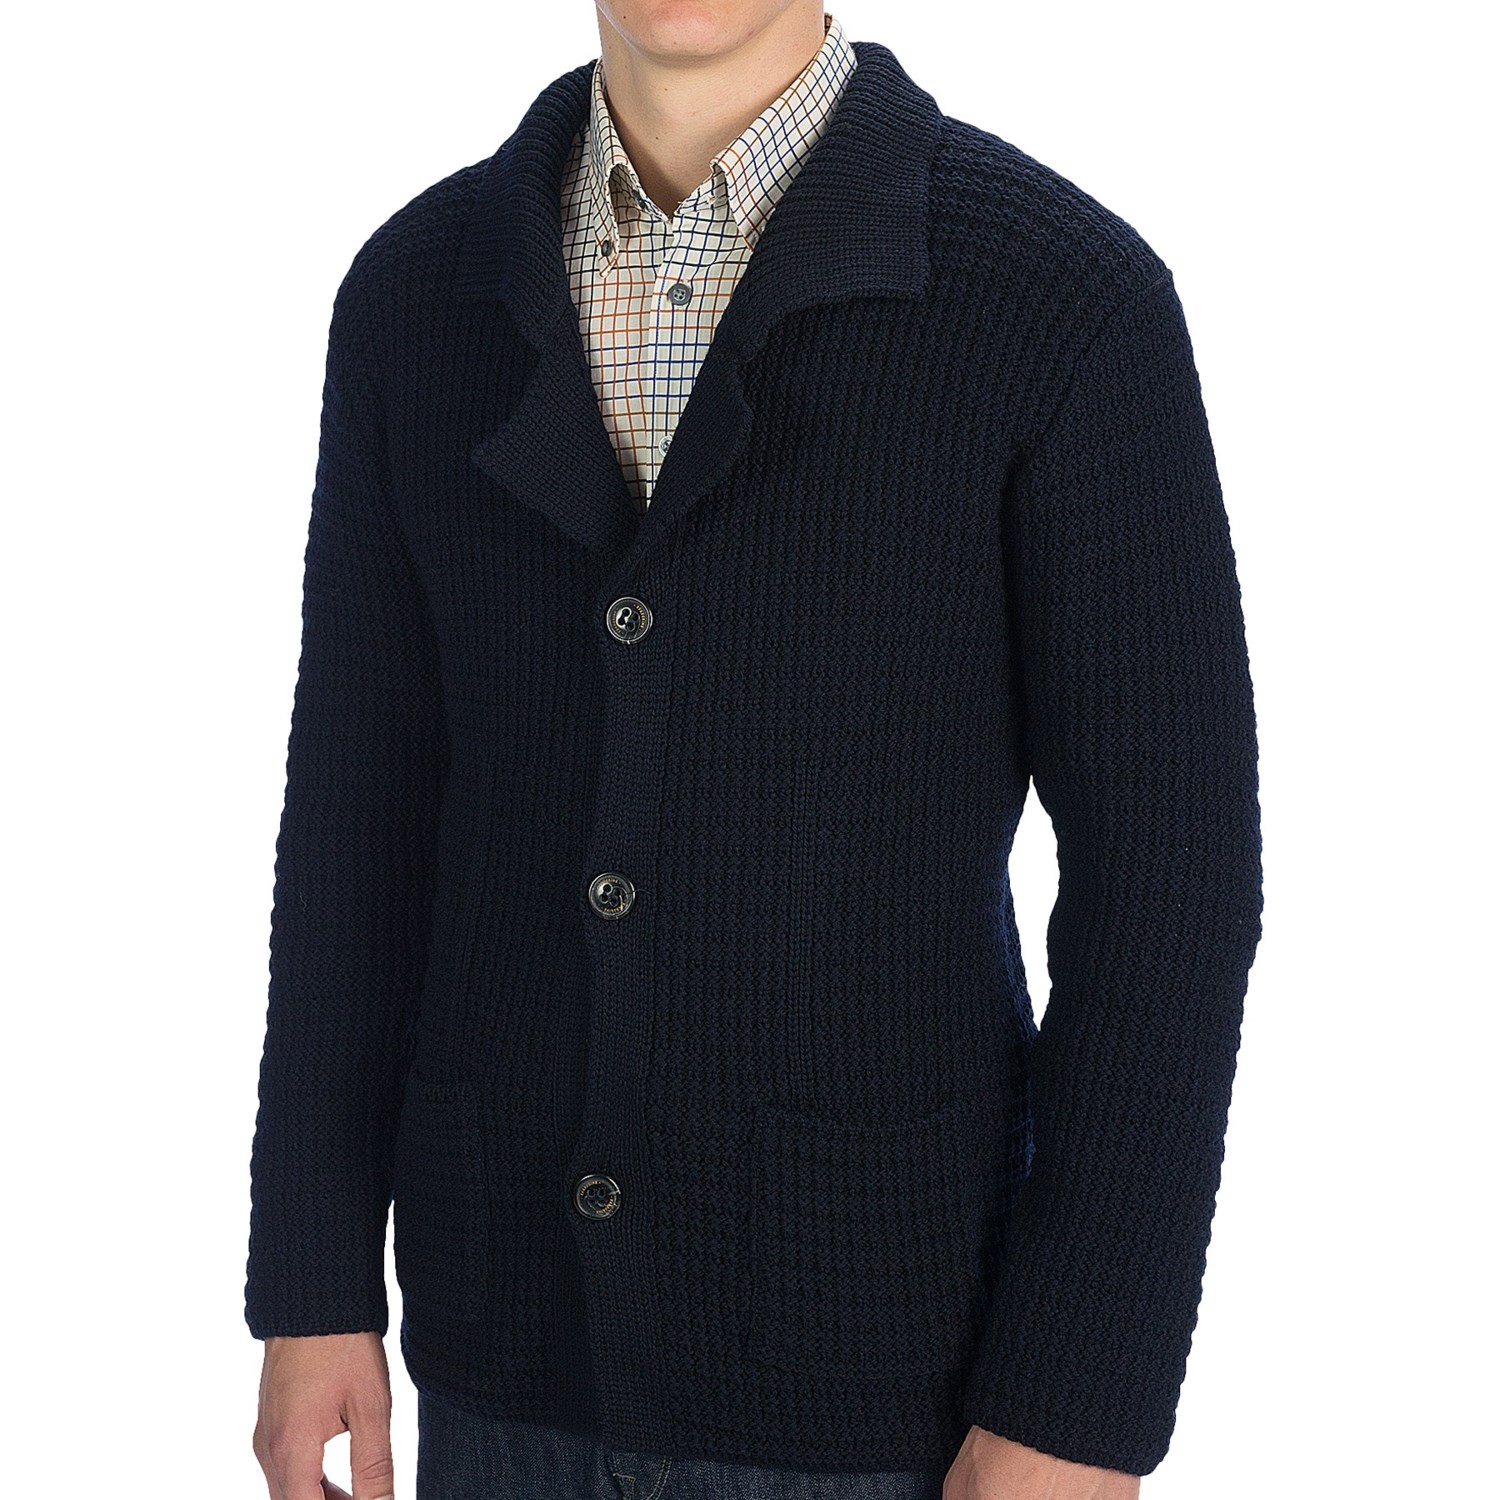 Verno Men's Navy and Light Blue Wide Herringbone % Wool Blazer.